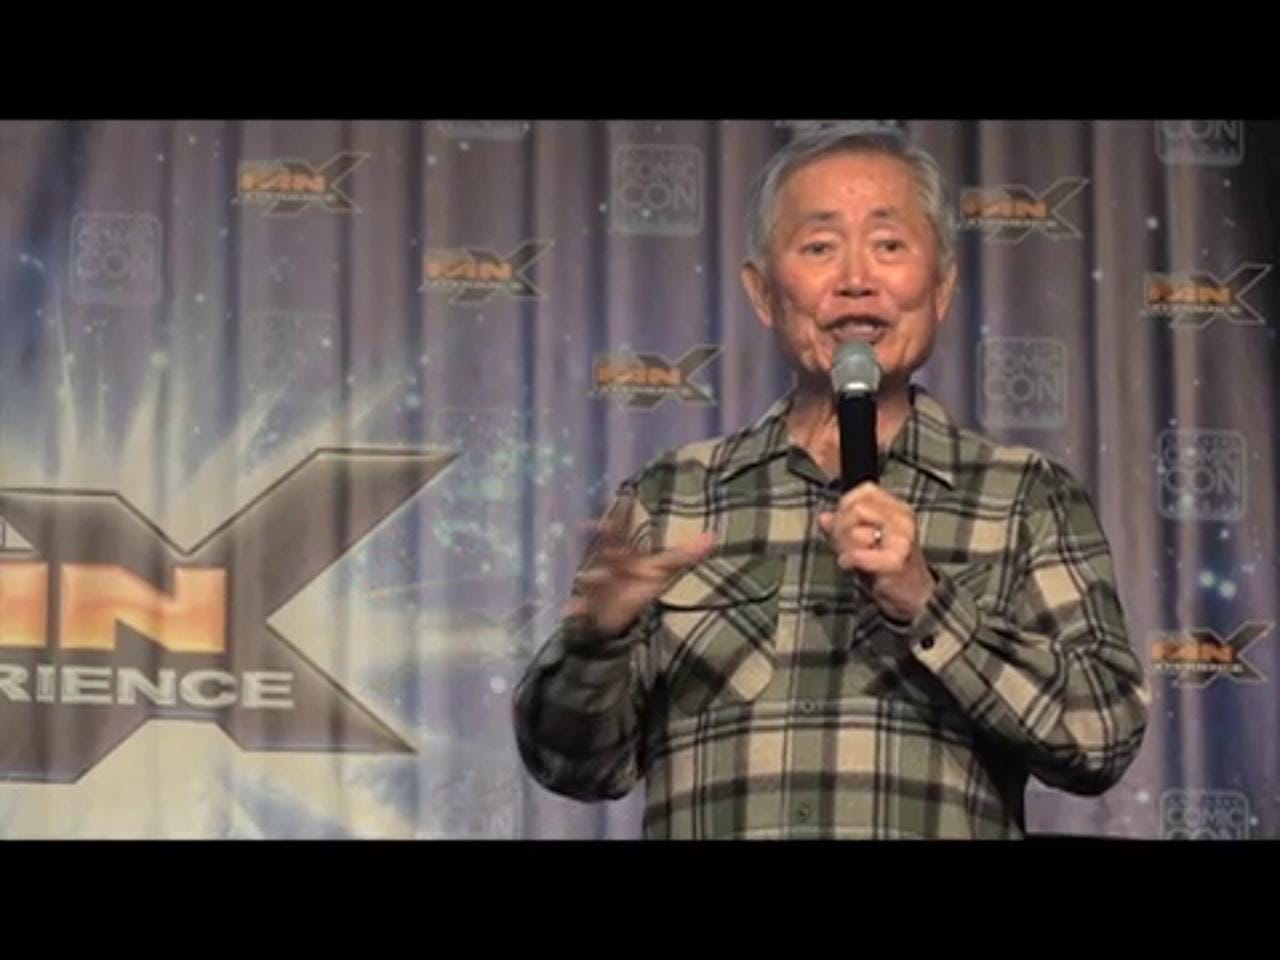 """""""Star Trek"""" actor George Takei, known as Mr. Sulu, speaks to hundreds of fans at the Salt Palace Convention Center Friday, March 25, 2016, during the 3rd annual Salt Lake Comic Con Fan Xperience."""